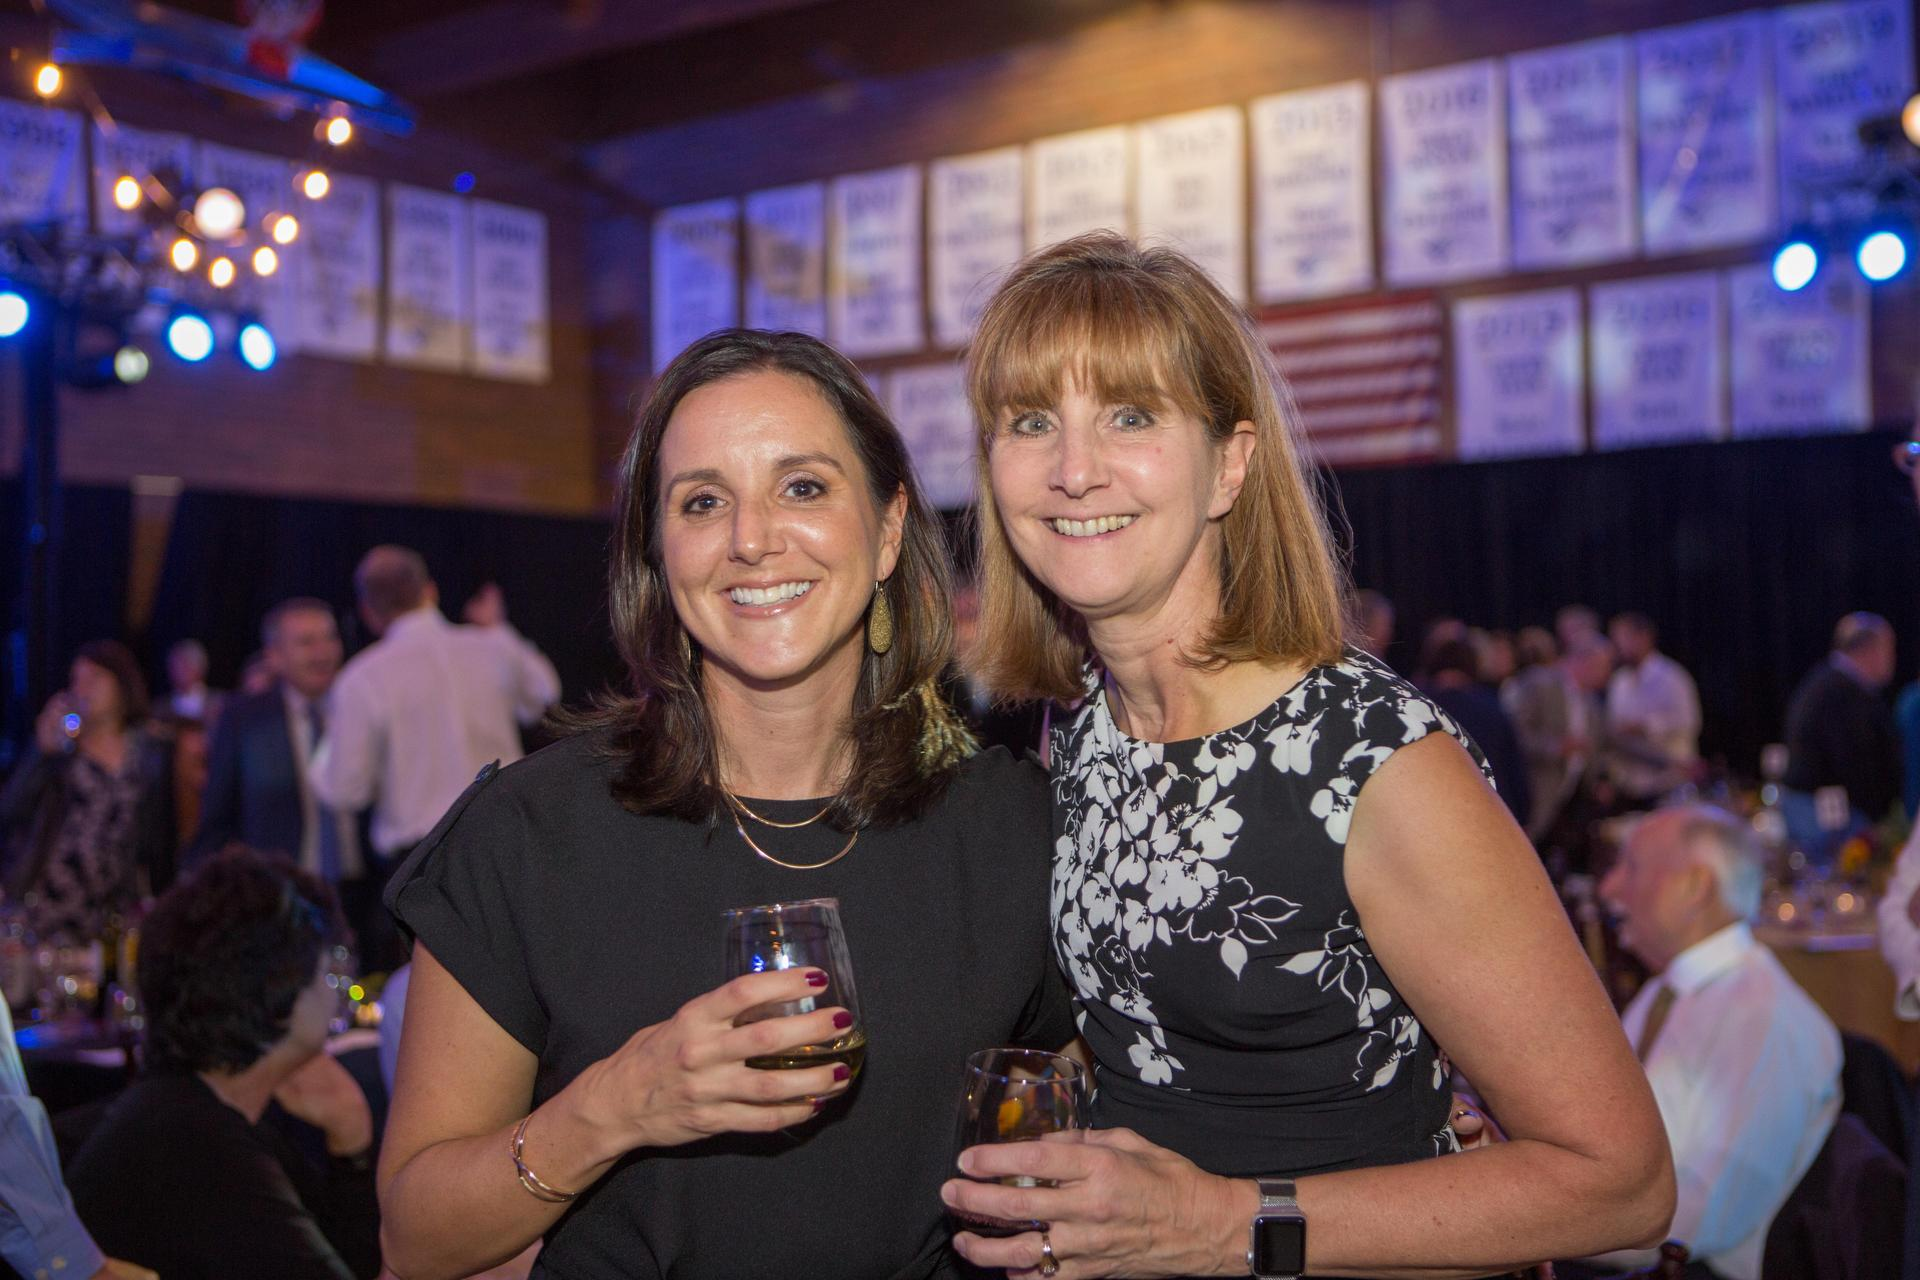 two women smile at event